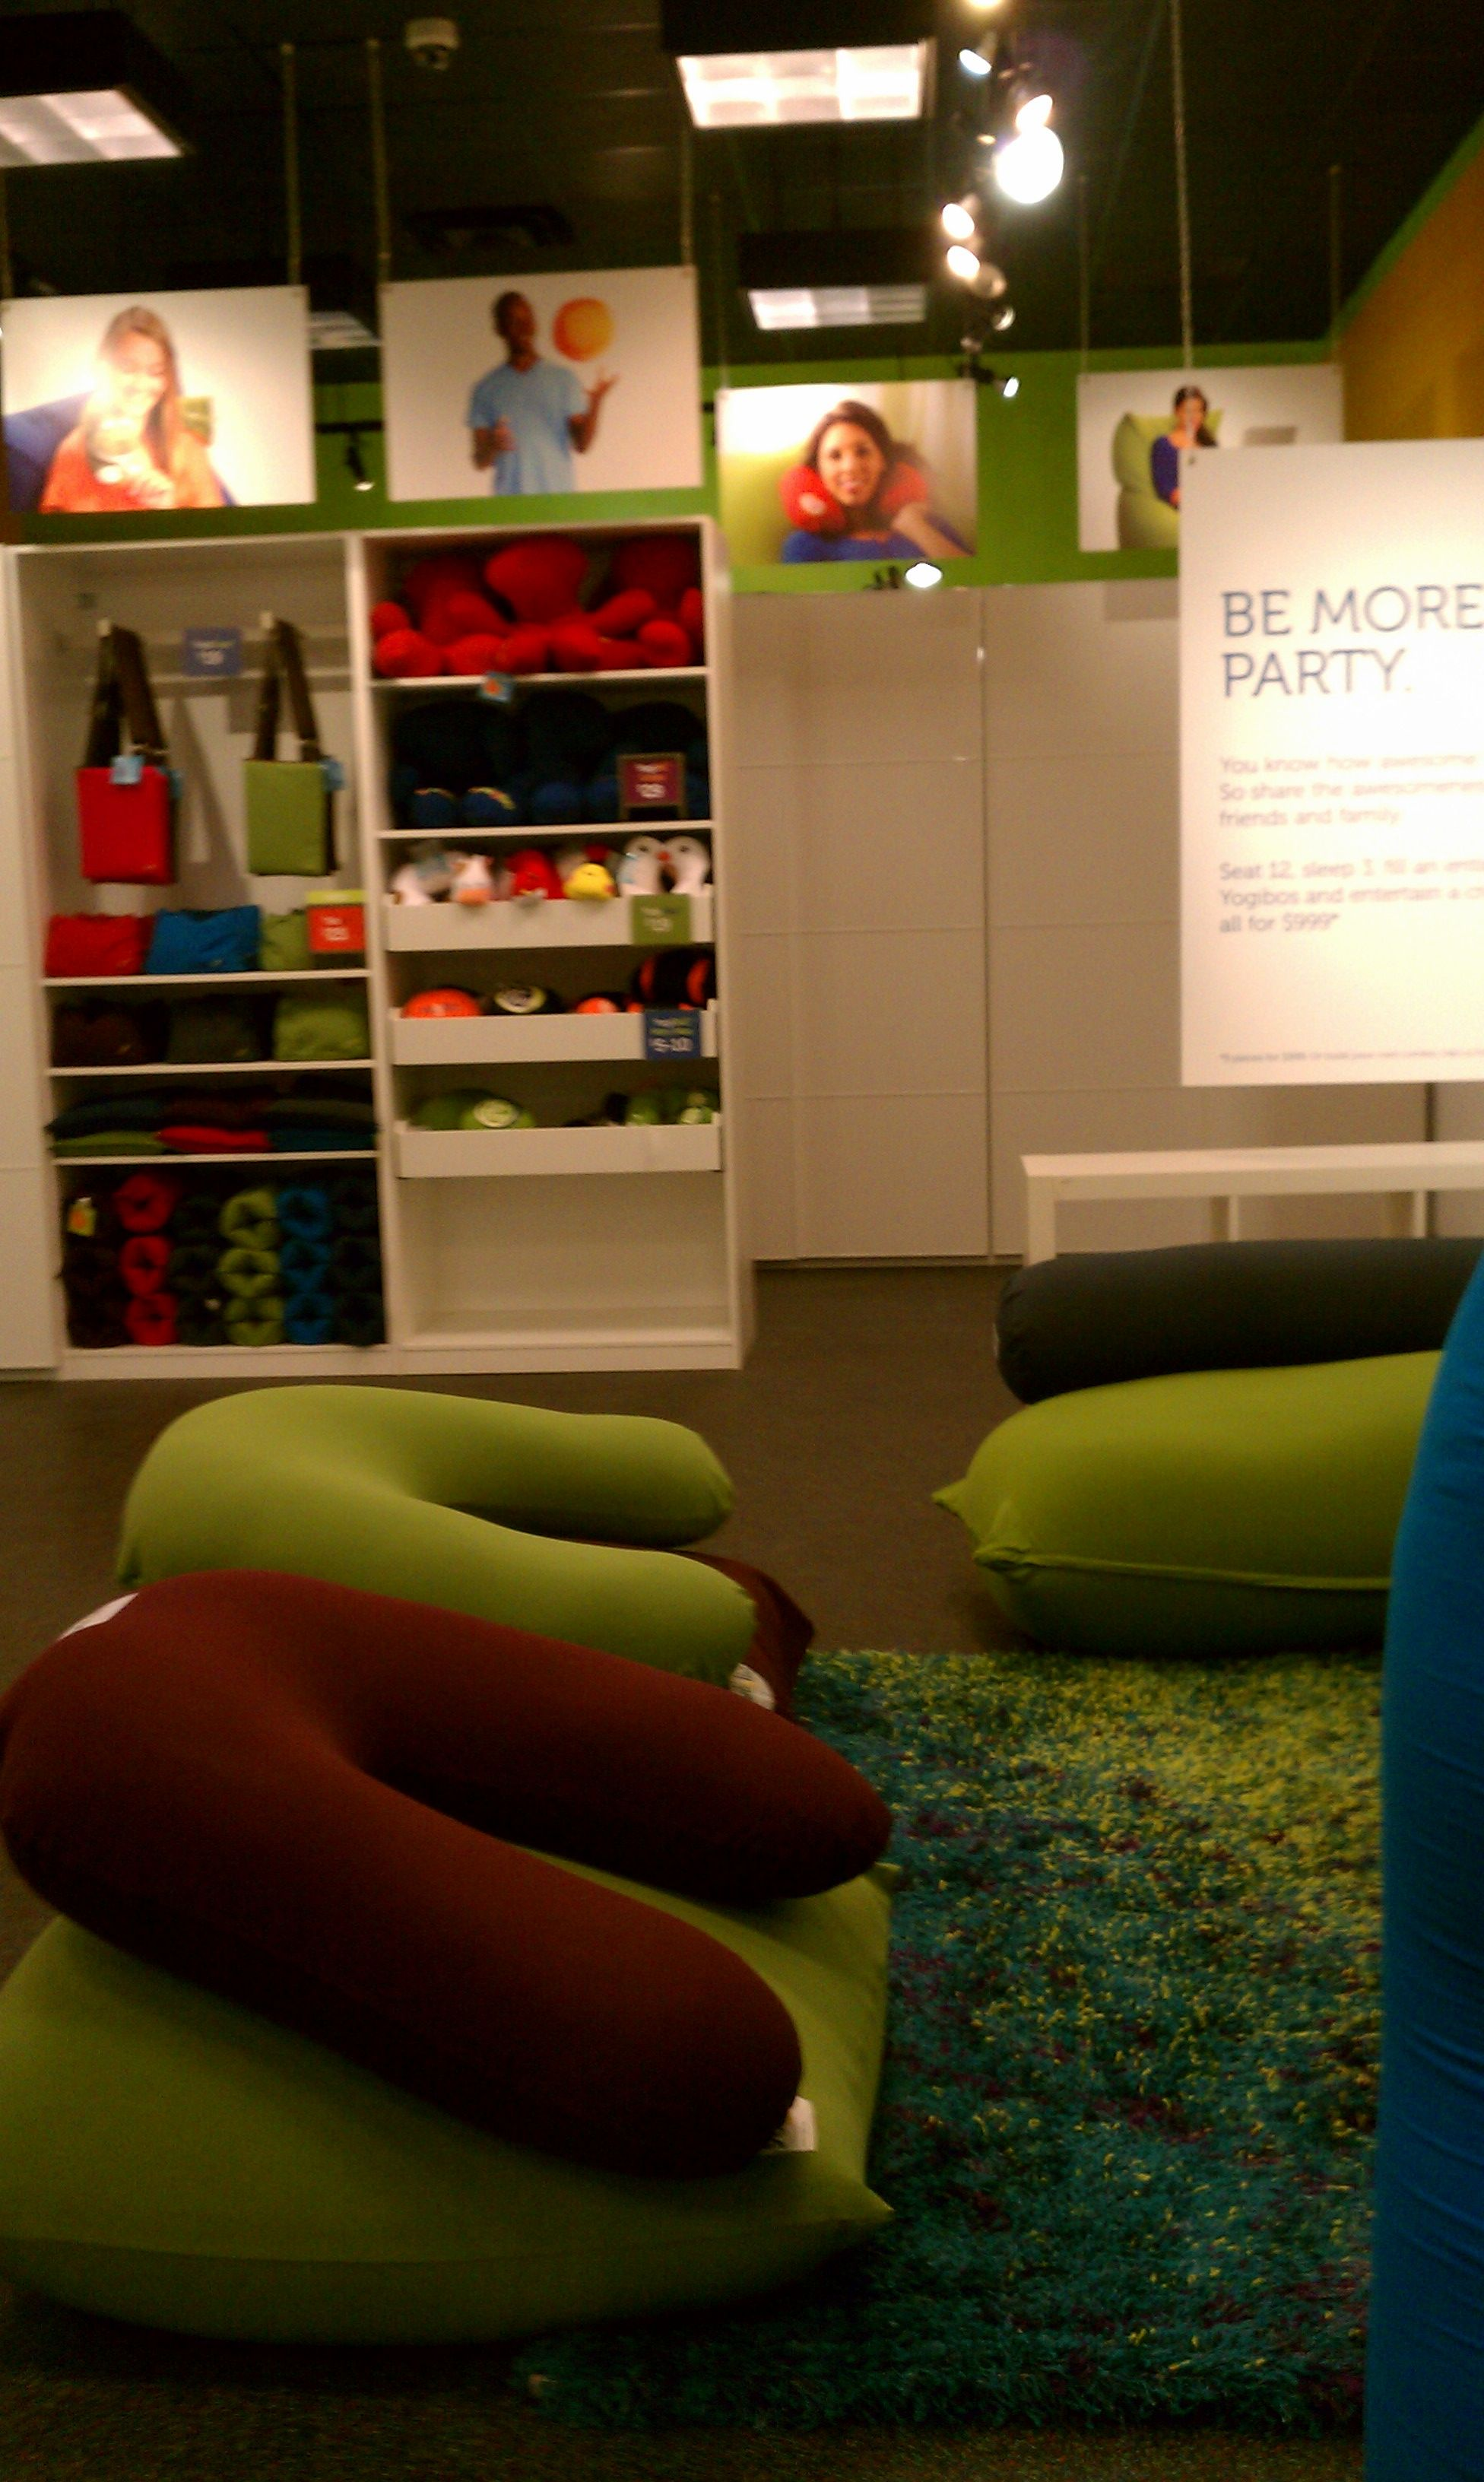 More options for your Yogibo collection. Cool furniture